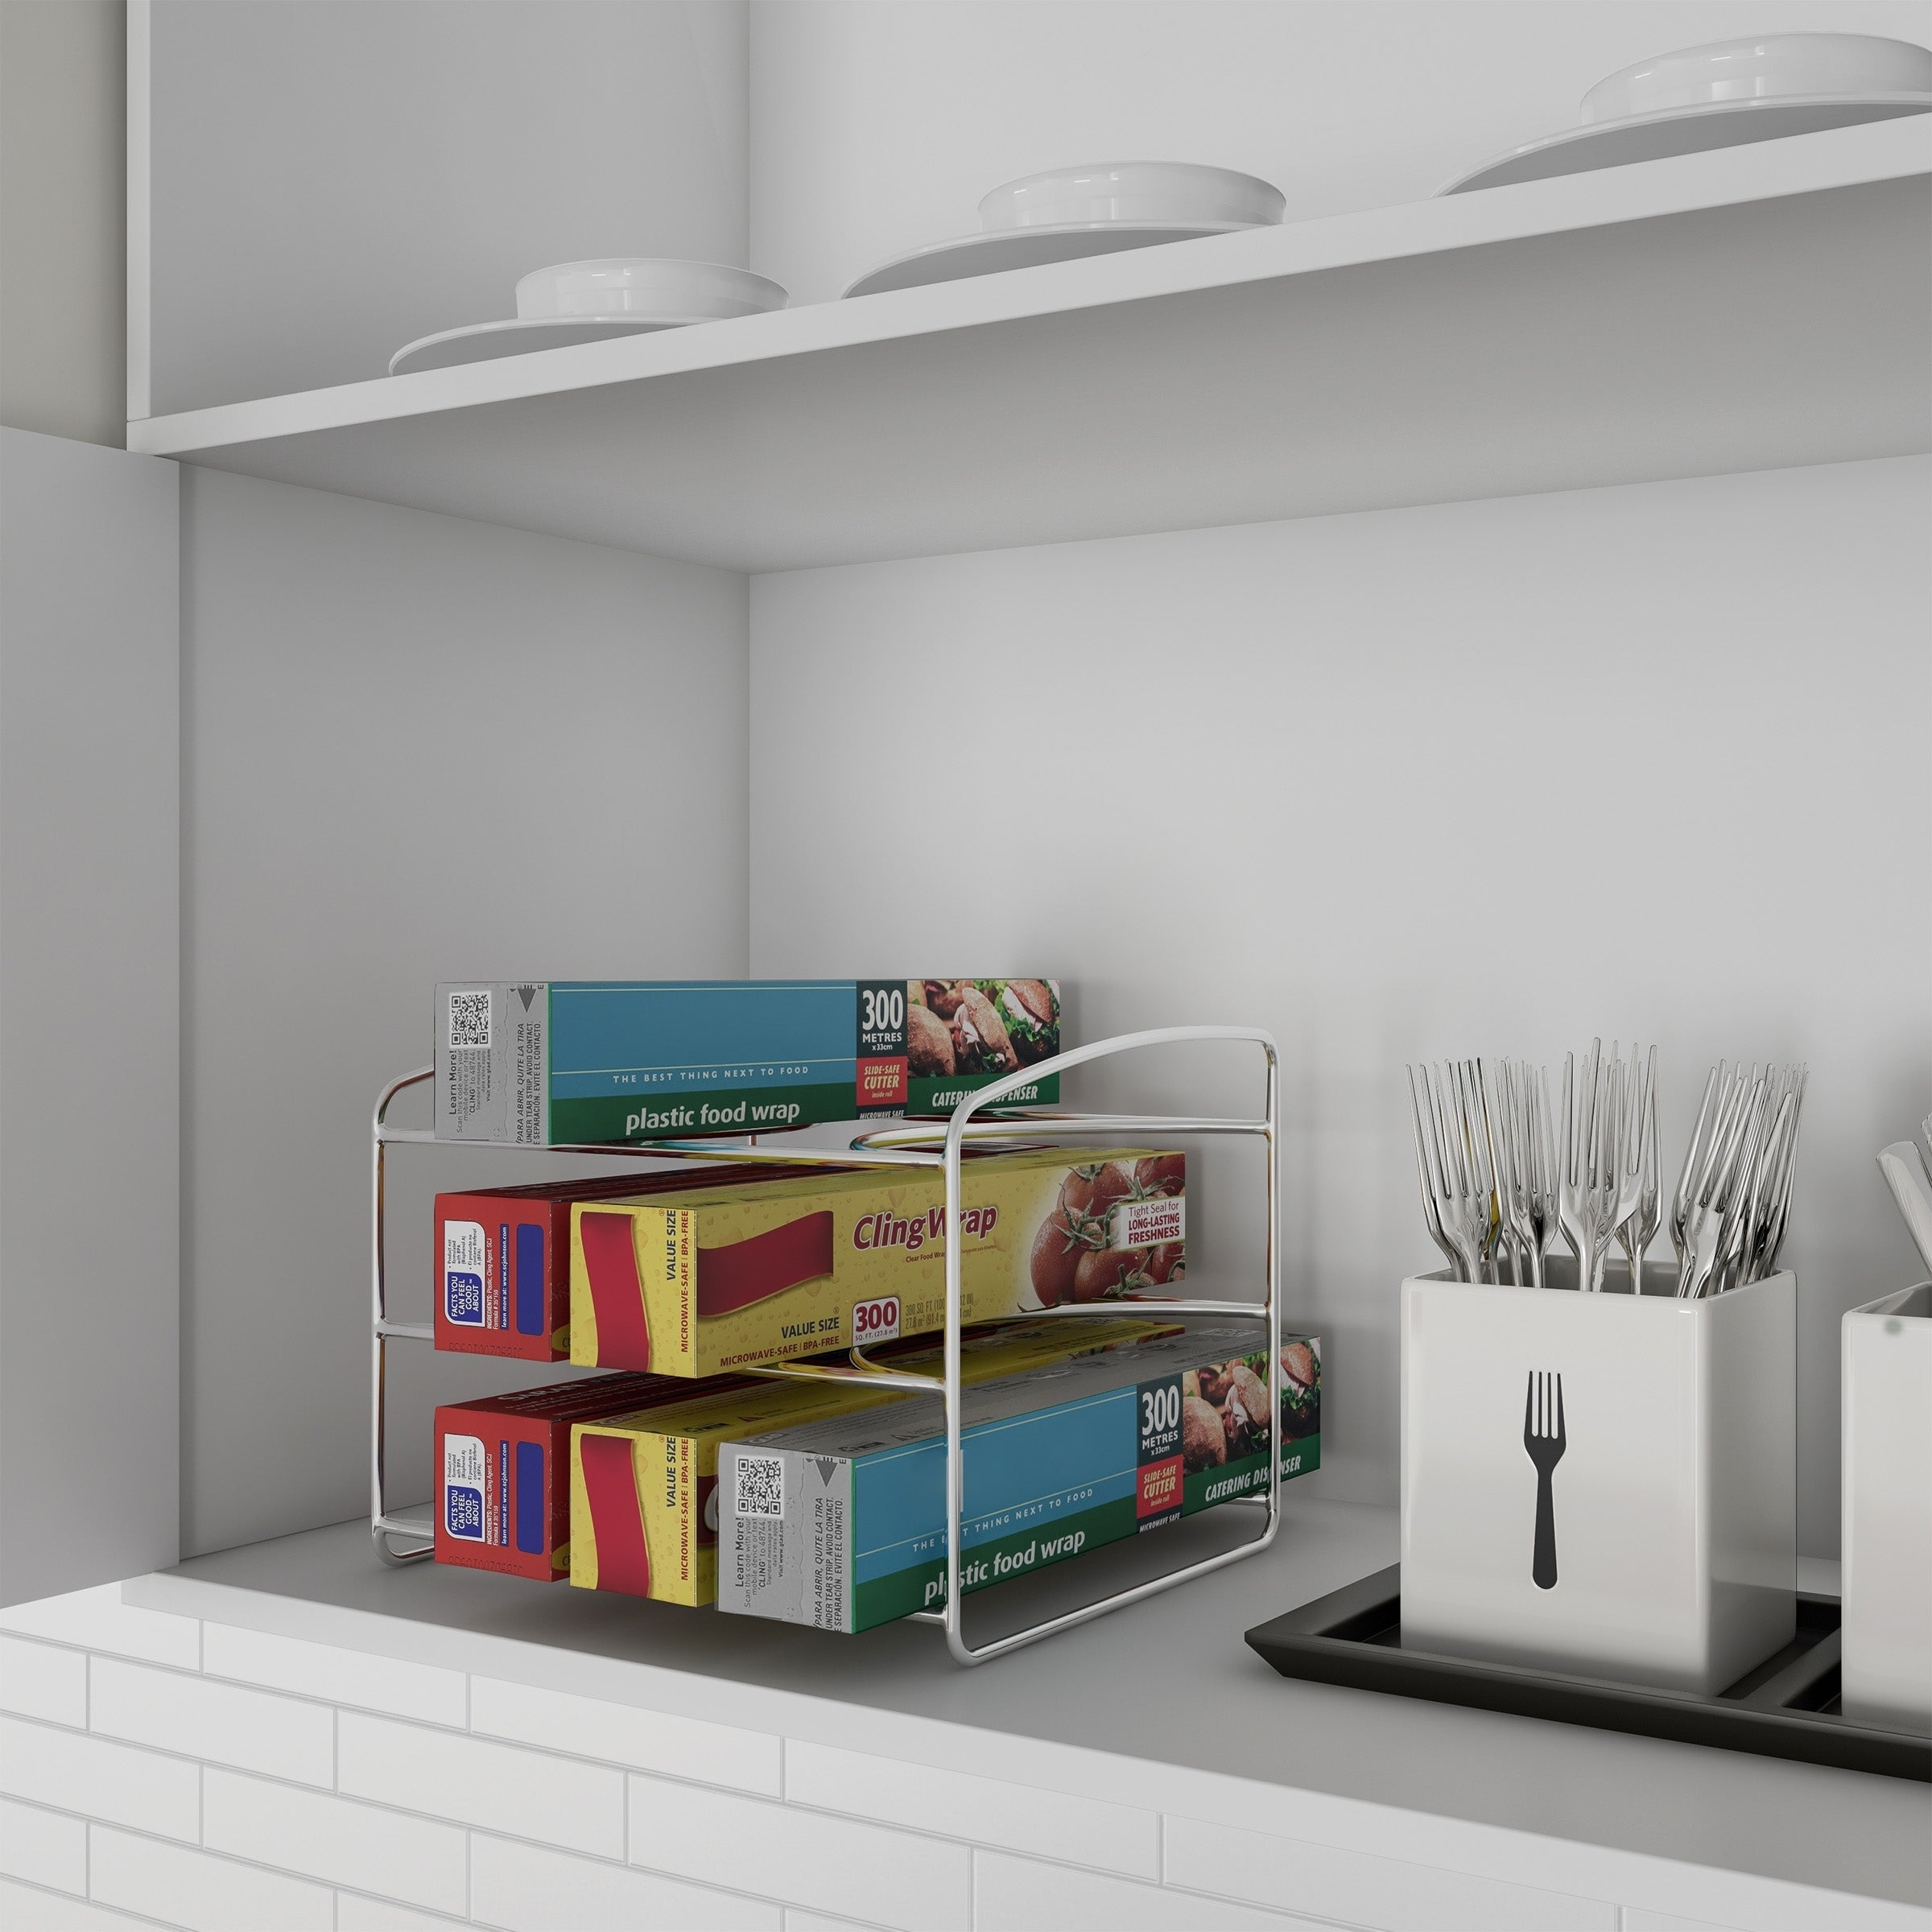 Shop Black Friday Deals On 3 Tier Kitchen Pantry Organizer For Foil Plastic Bags Parchment Paper Holder Cabinet Organization By Lavish Home Overstock 27973114